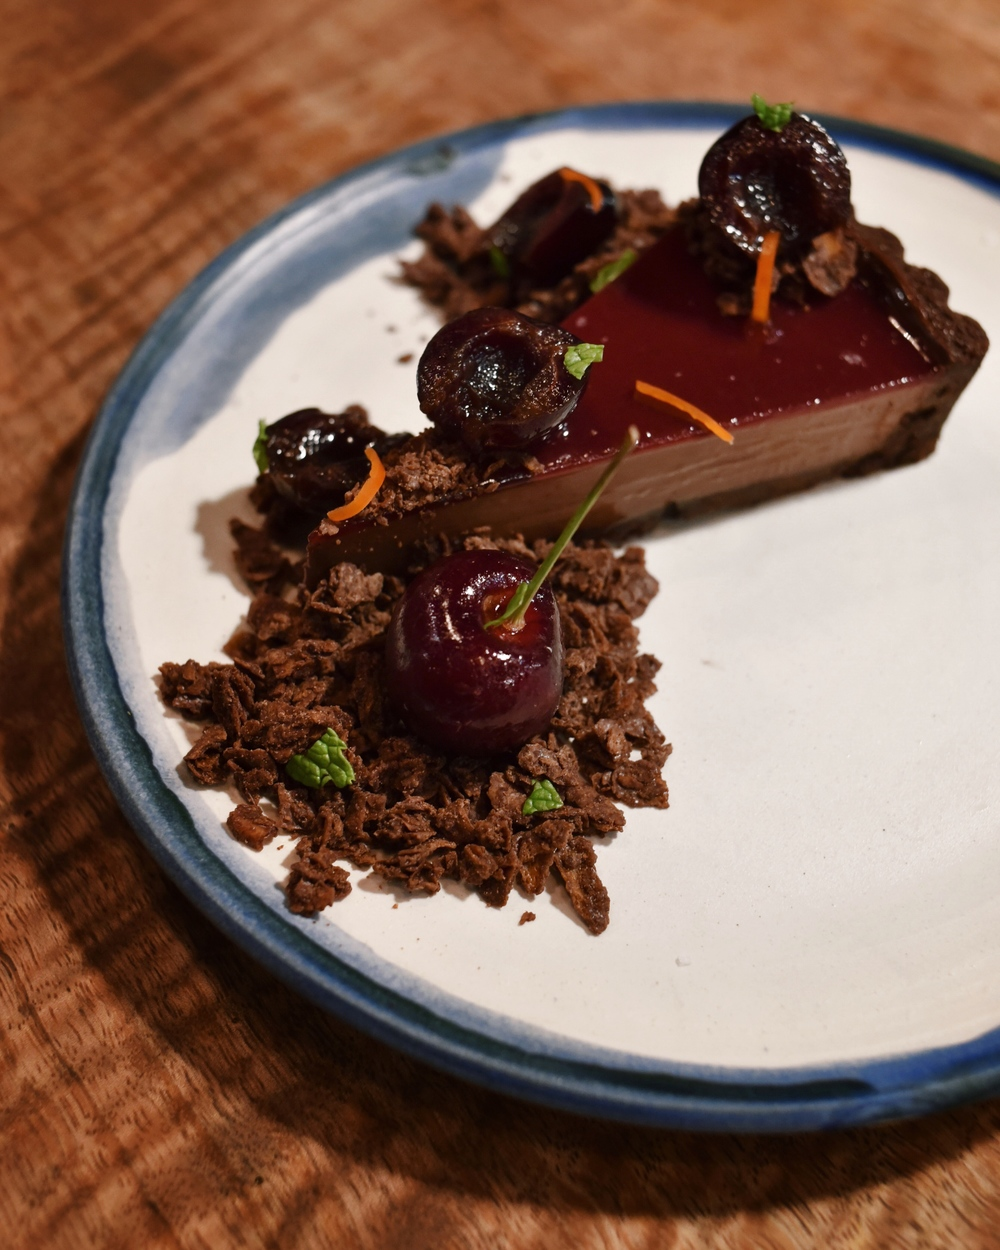 CHOCOLATE CHERRY OH BABY TART, valrhona dark chocolate cherry tart, compressed bing cherries in cacao and amaretto liqueur simple syrup, thai chili and chocolate salted feuilletine crunch